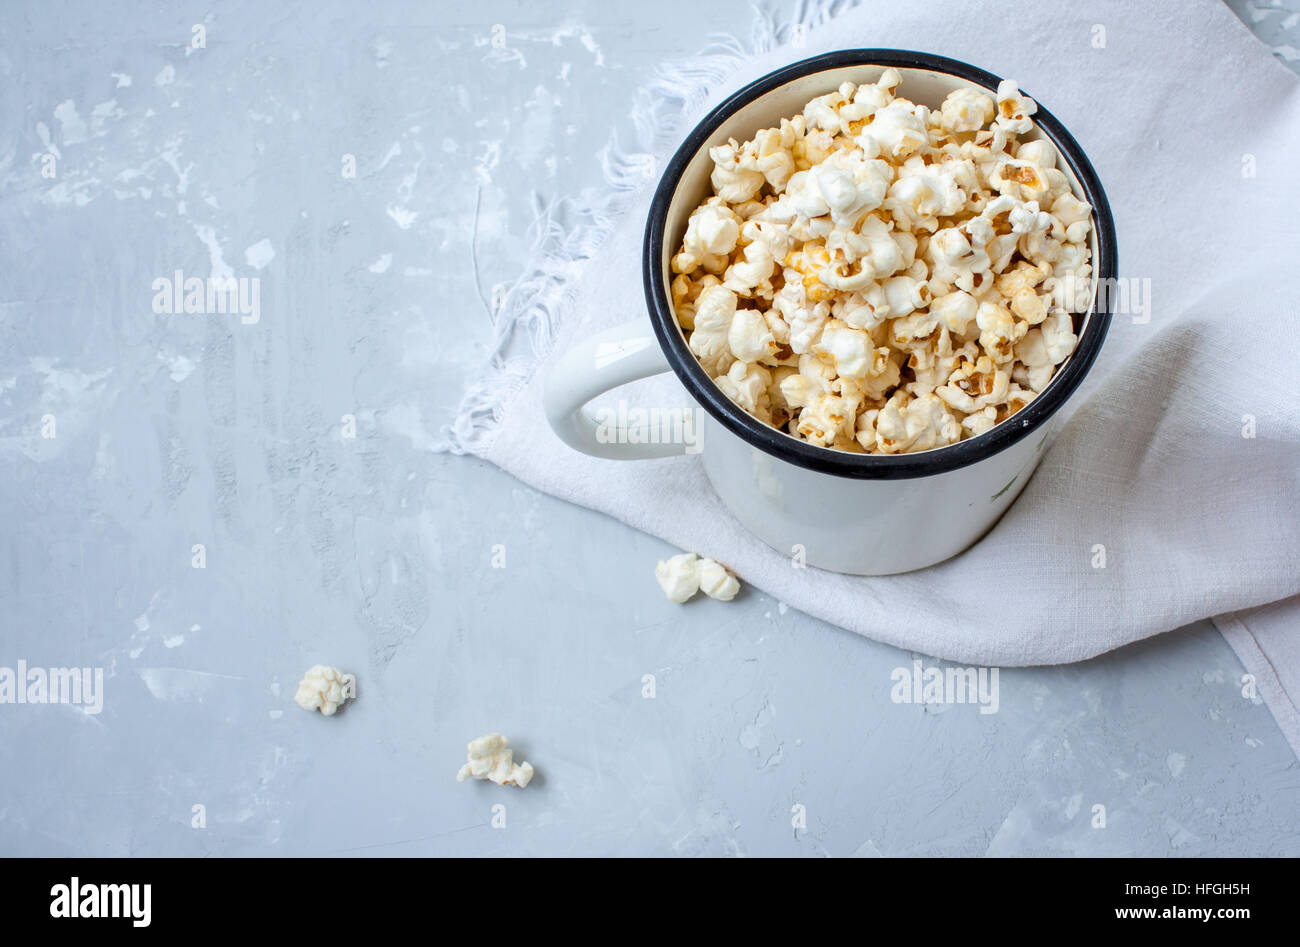 Sweet caramel popcorn in a large iron circle on the concrete gray background. Stock Photo